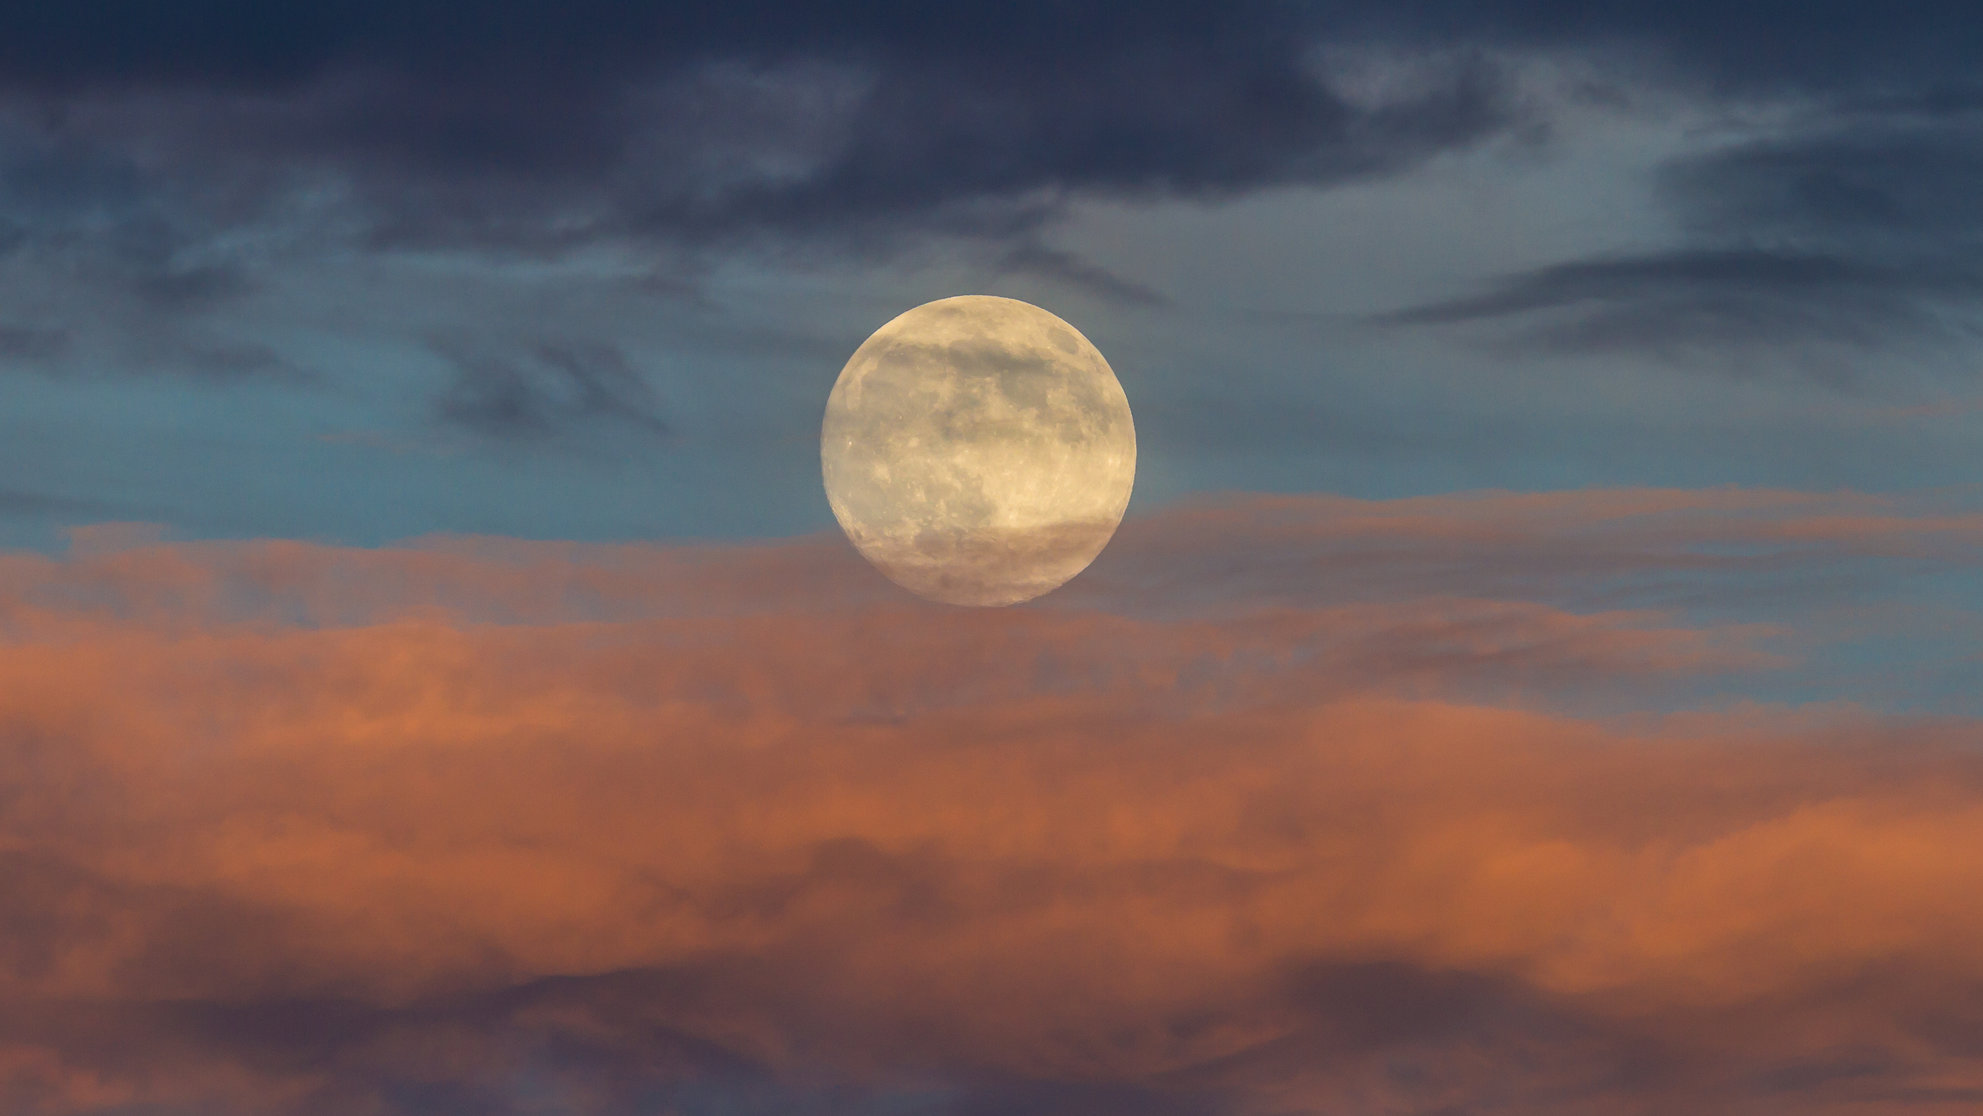 Next Week's Supermoon May Be a Once in a Lifetime Event